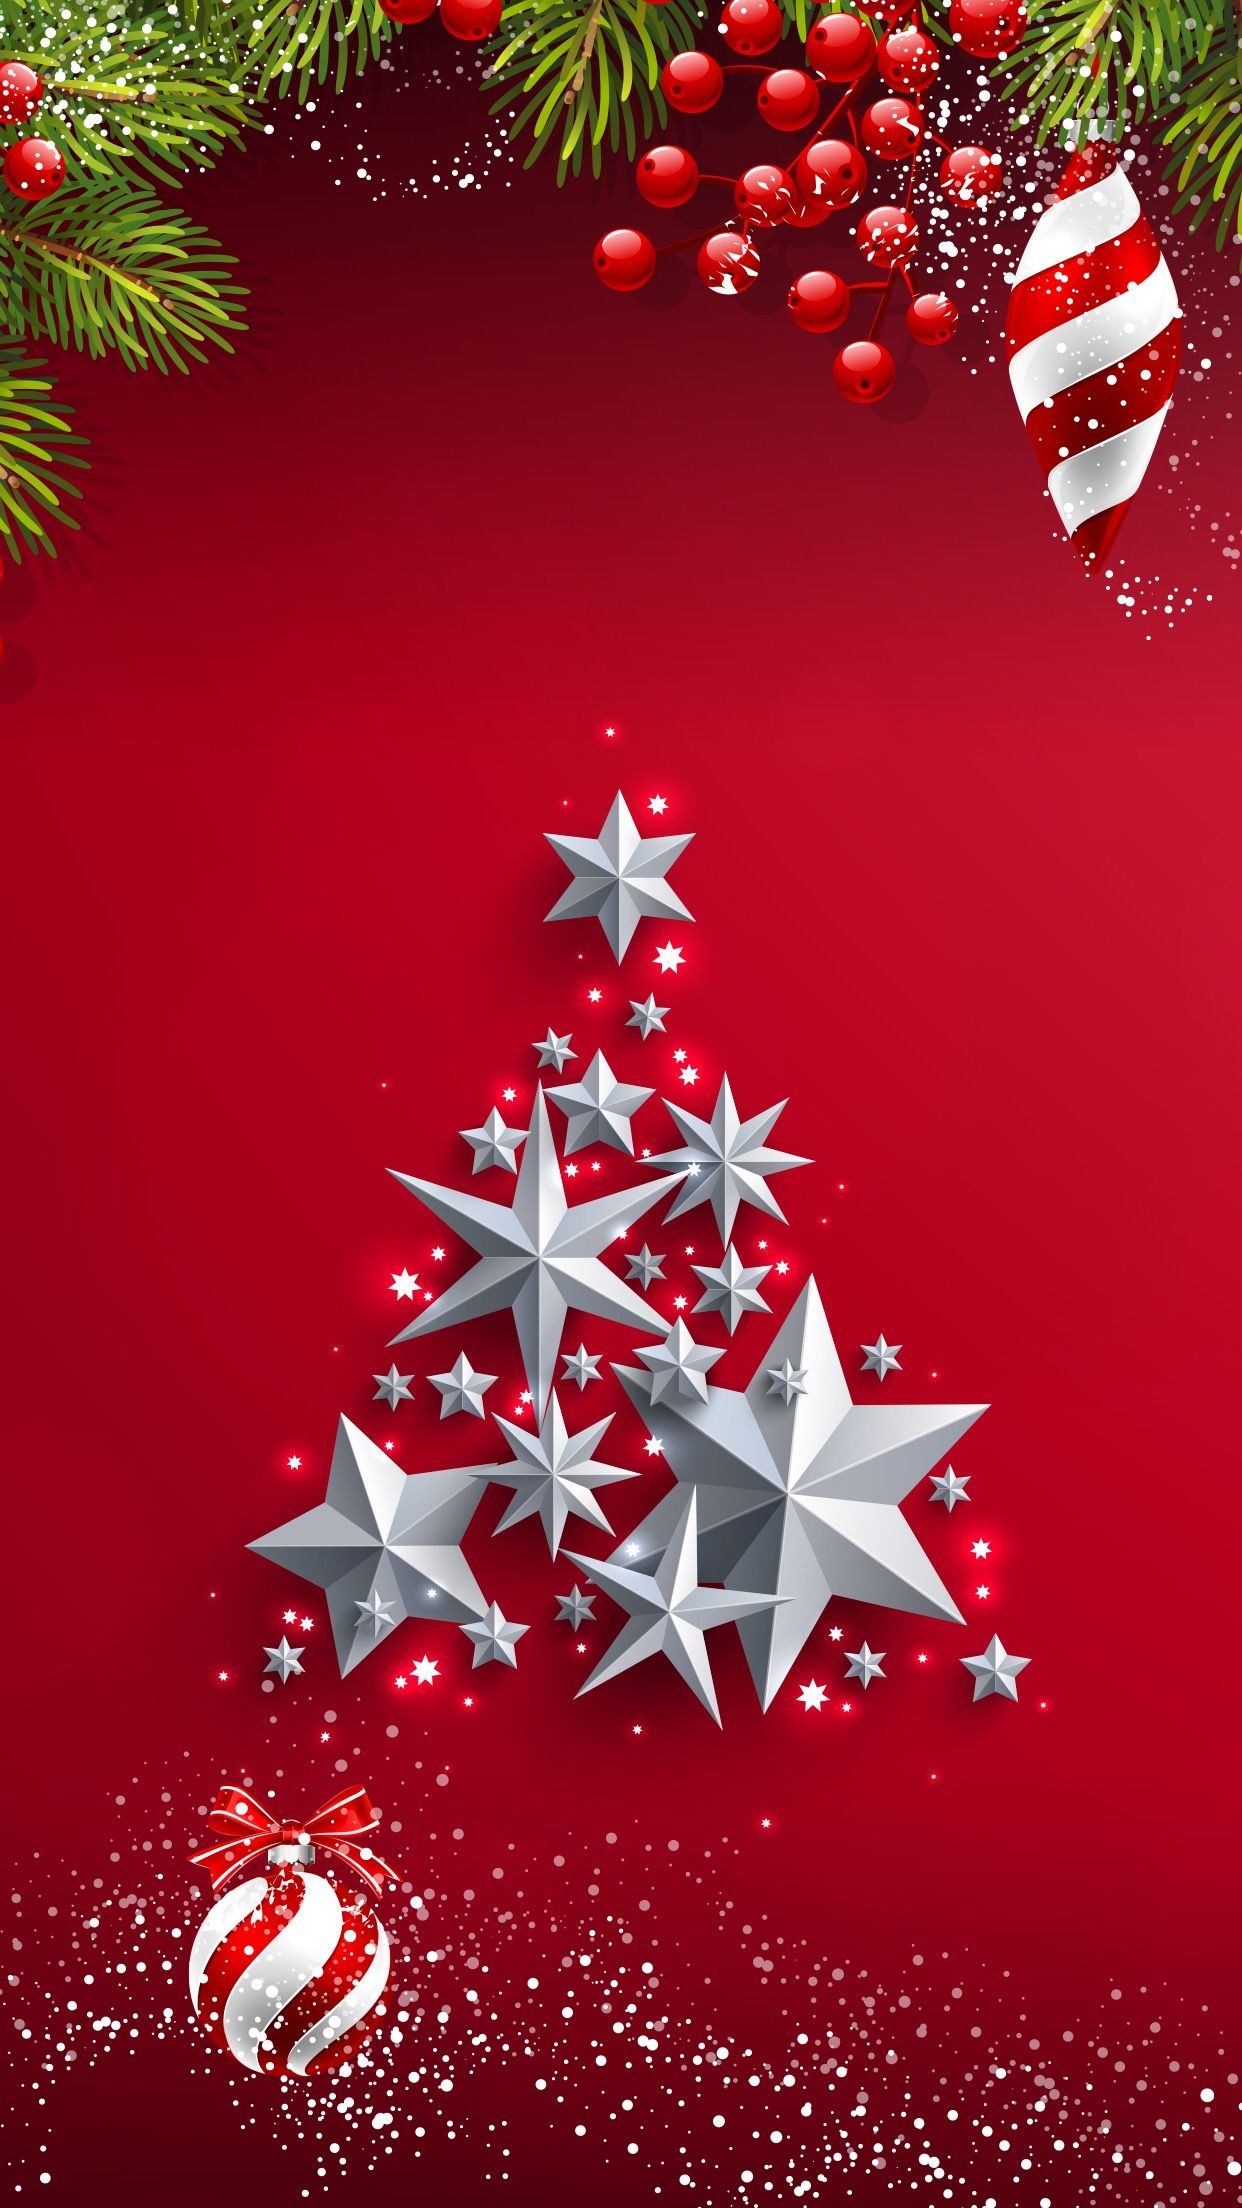 Iphone Wall Christmas Tjn Merry Christmas Wallpaper Christmas Phone Wallpaper Christmas Wallpaper